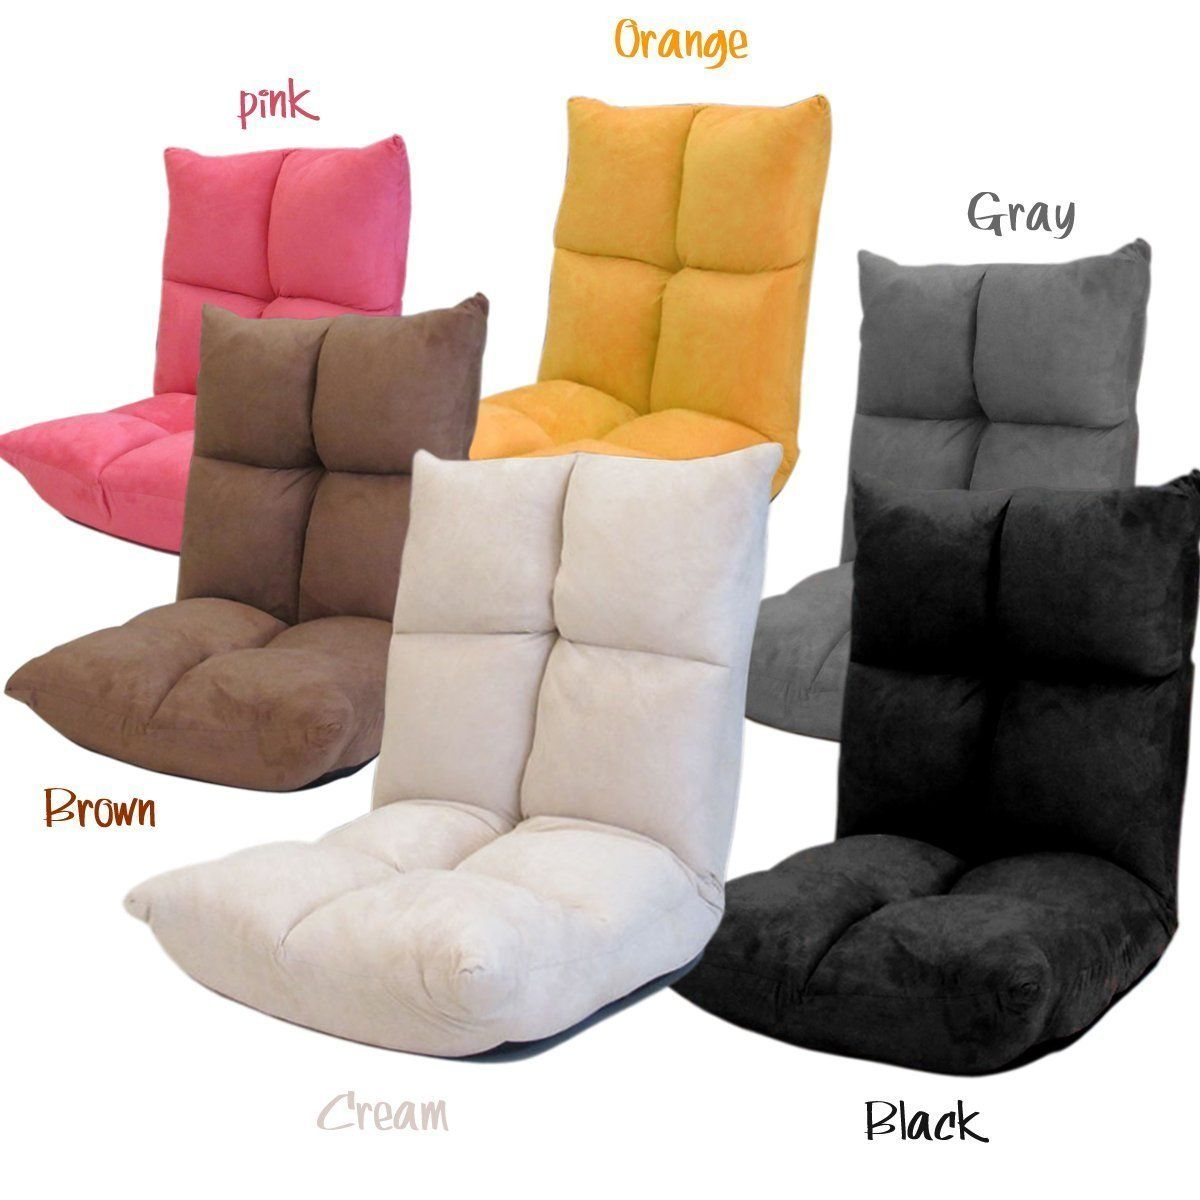 futon chairgaming chair  game on  pinterest  futon chair  - futon chairgaming chair